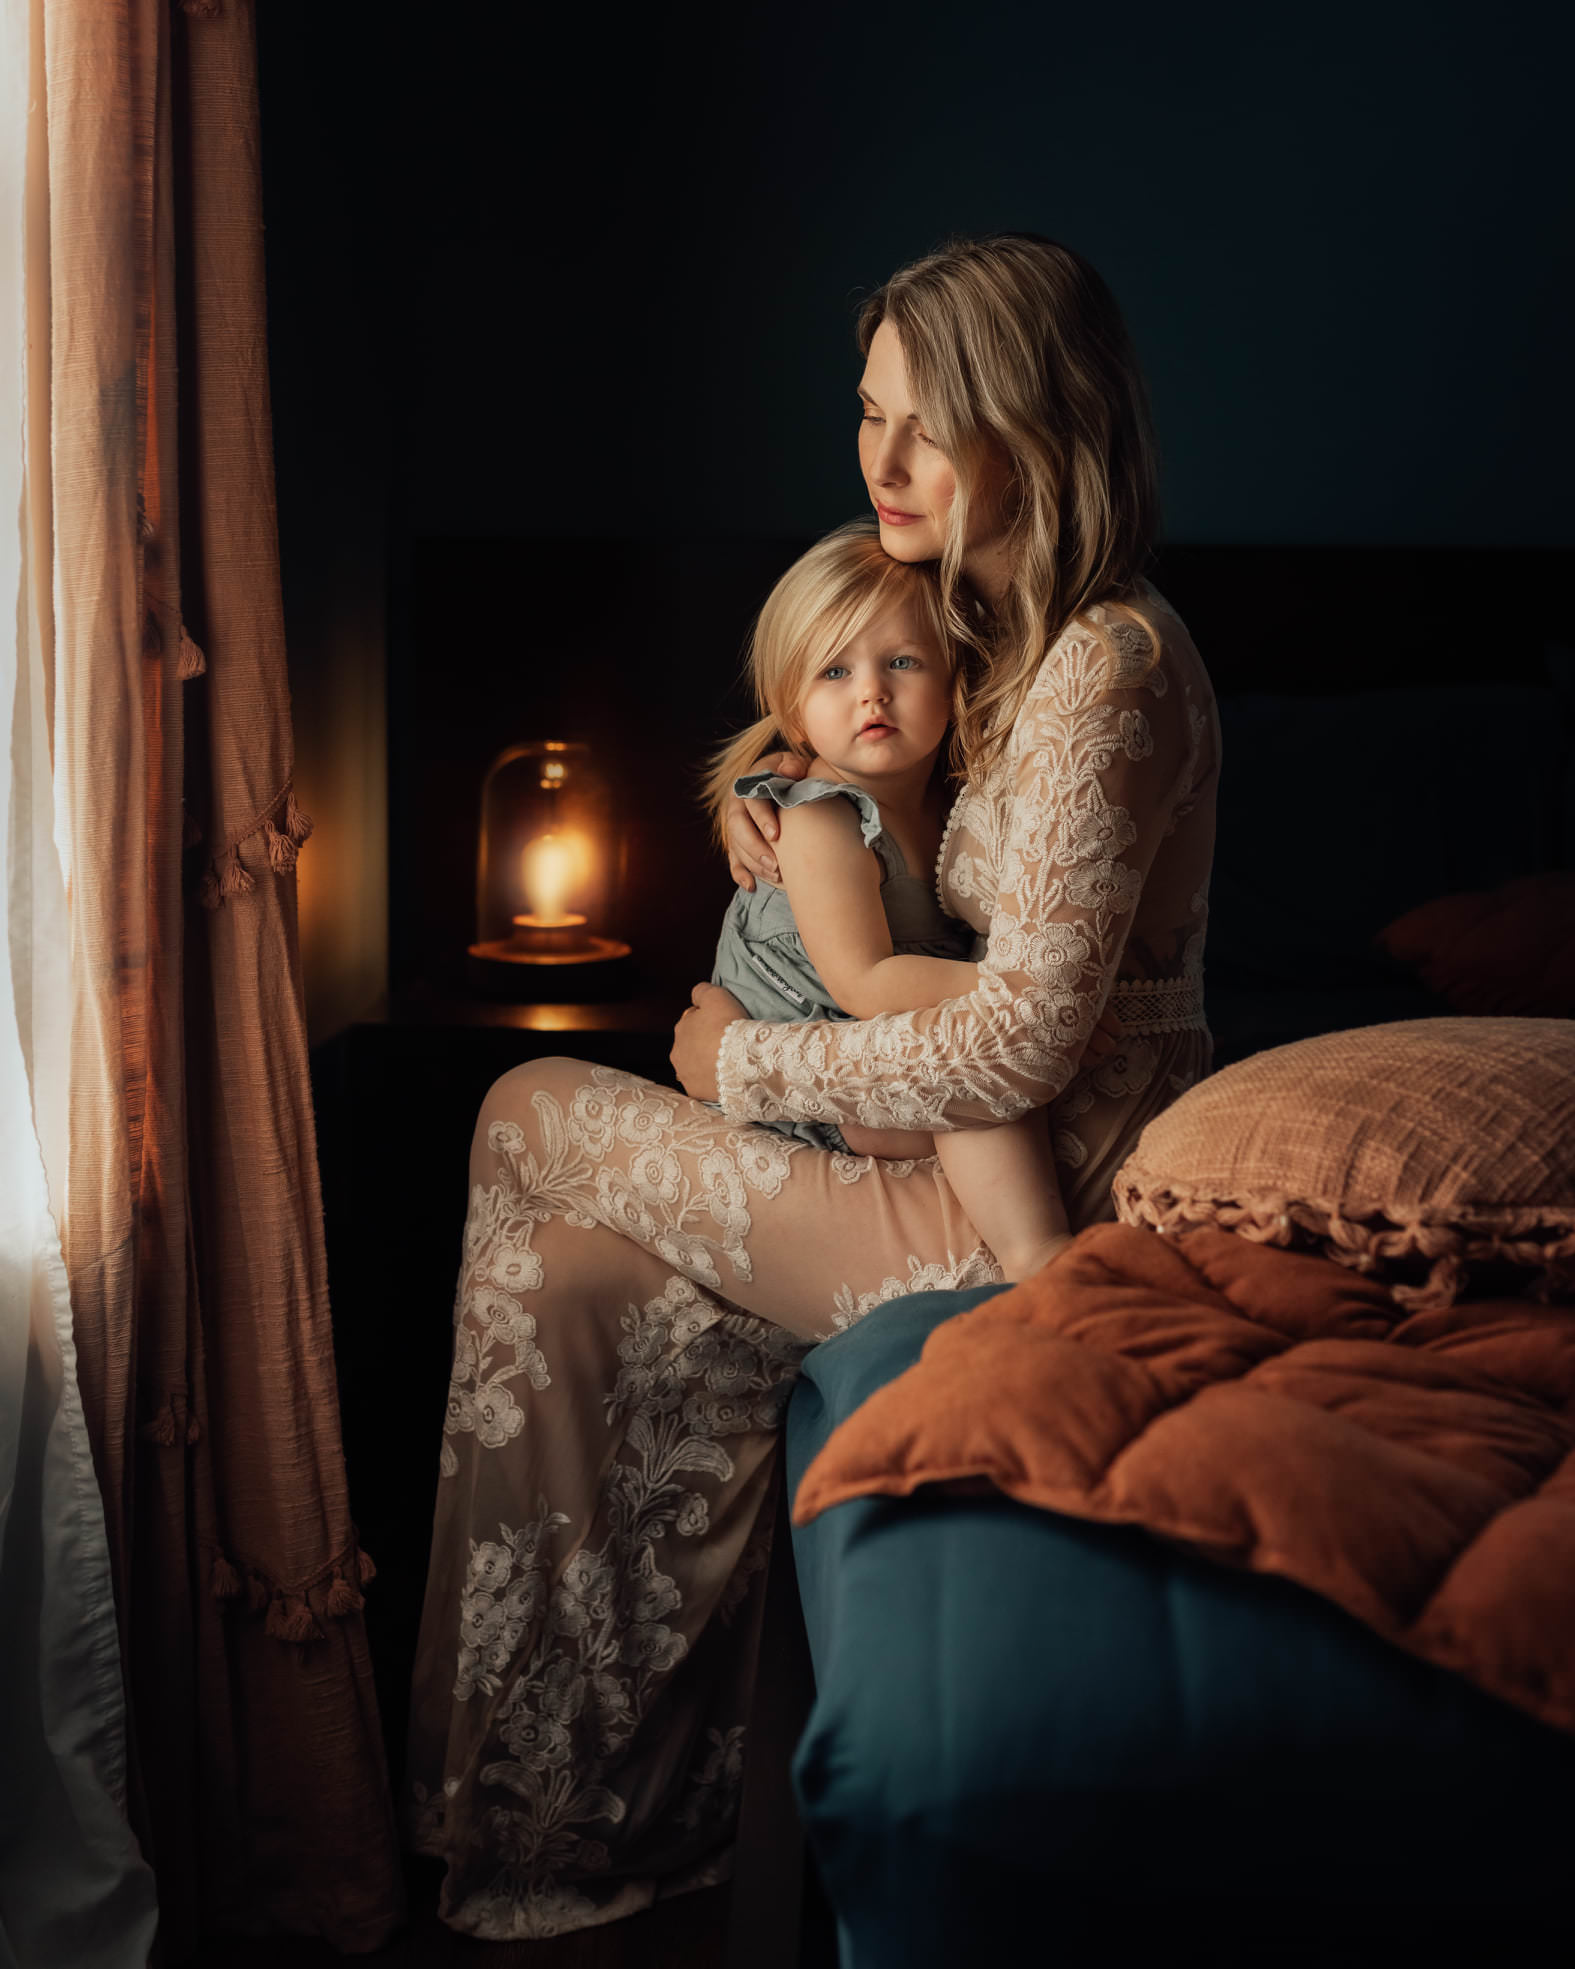 The Best Family Photographers Of 2020 Showing Their 56 Beautiful Photos